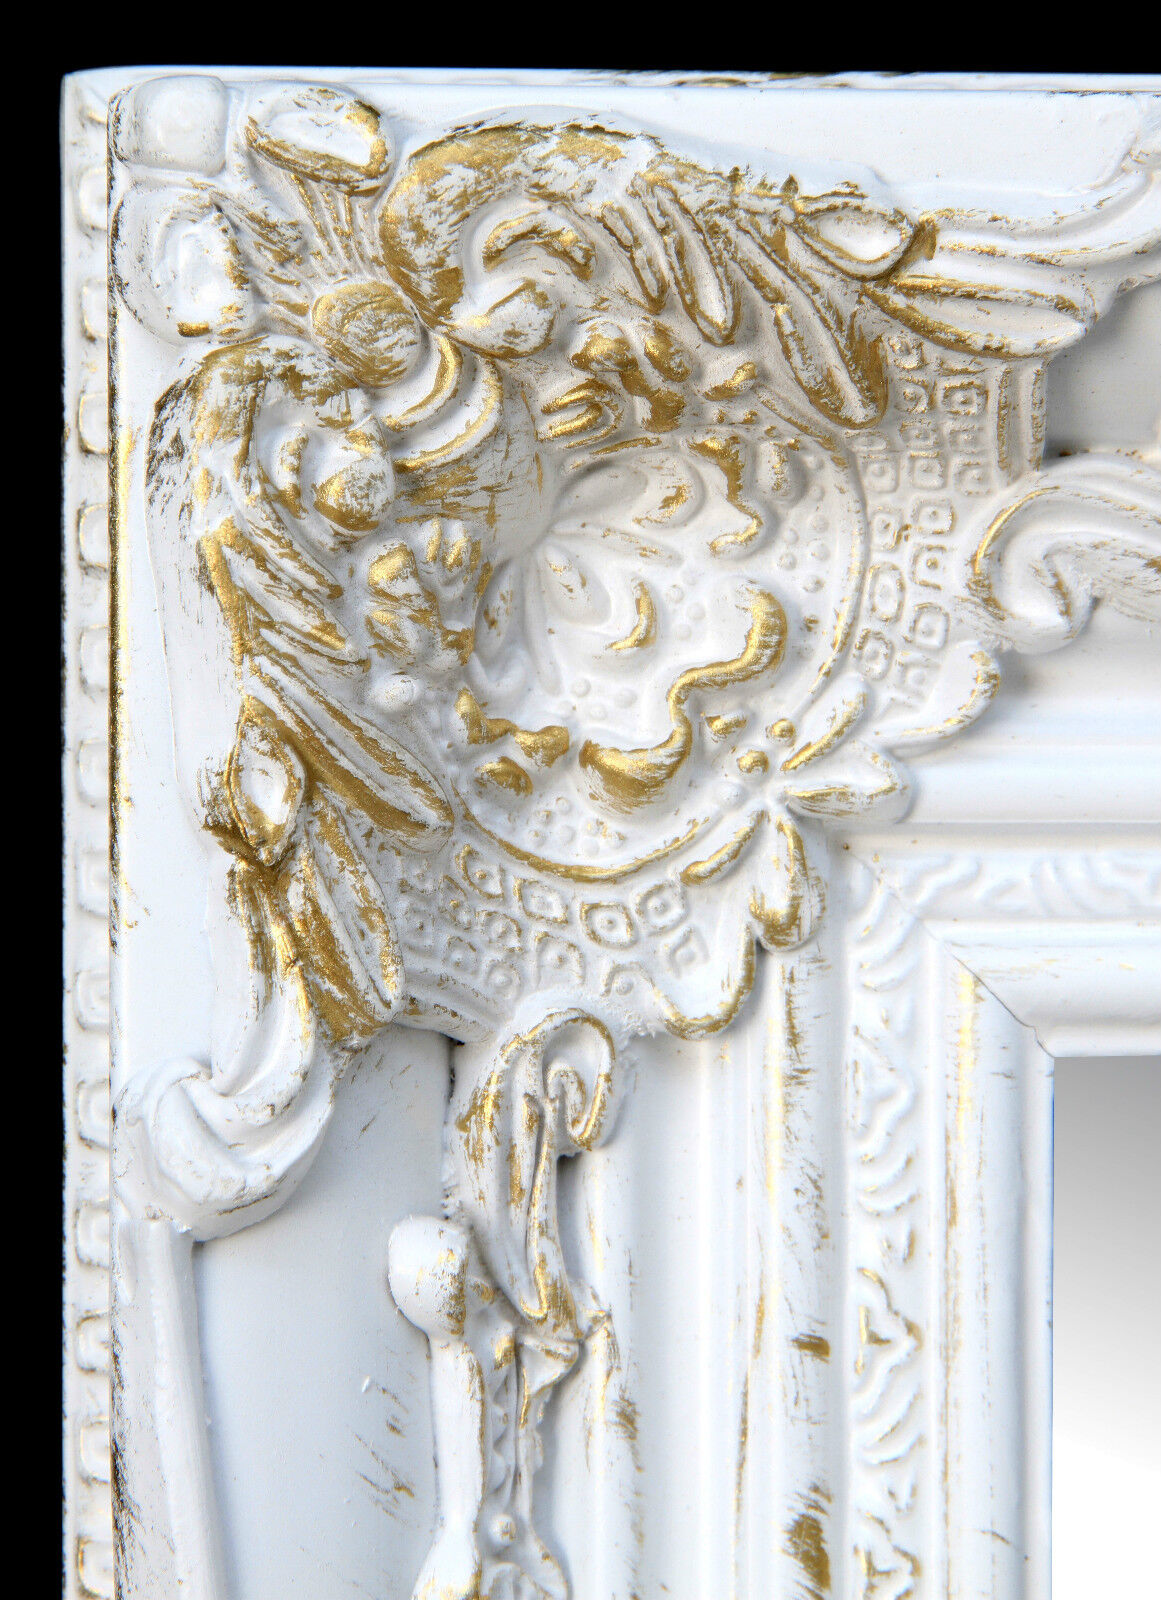 wandspiegel rechteckig weiss gold flurspiegel spiegel barock antik repro shabby. Black Bedroom Furniture Sets. Home Design Ideas